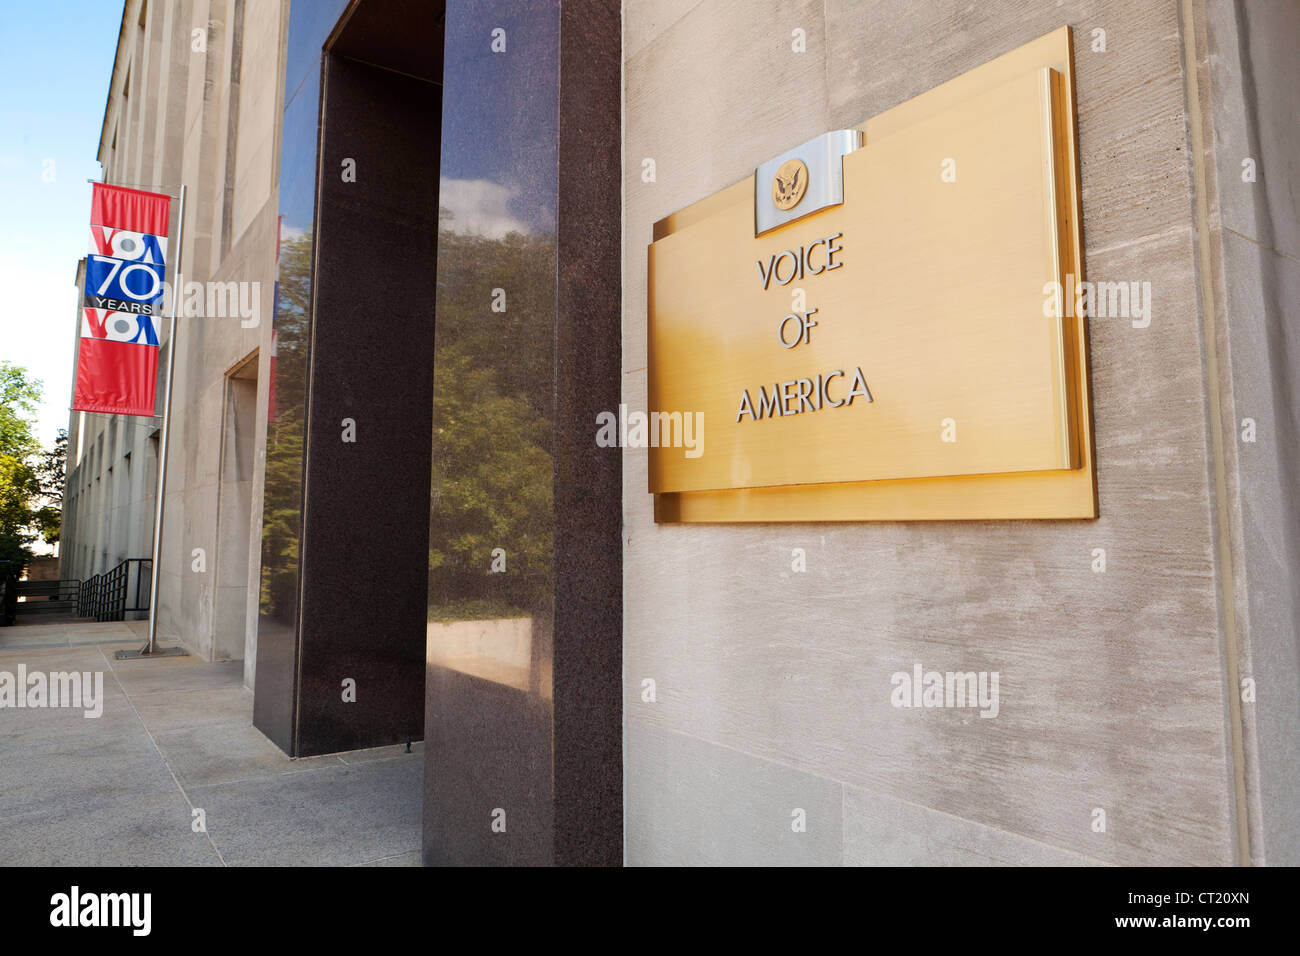 Voice of America building entrance - Stock Image